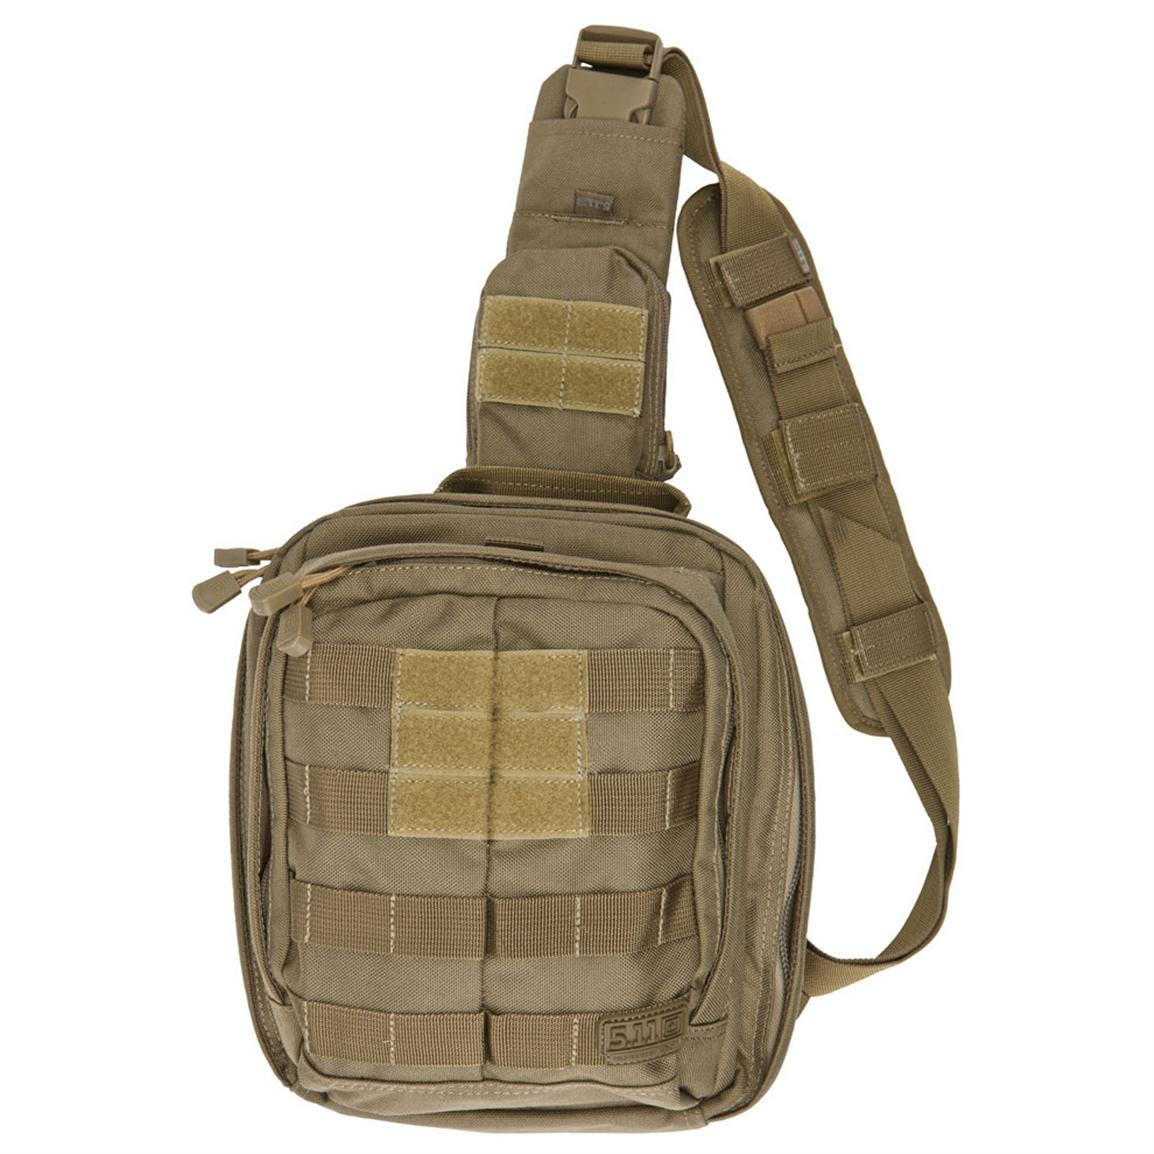 5.11 Tactical® RUSH MOAB 6 Pack, Sandstone